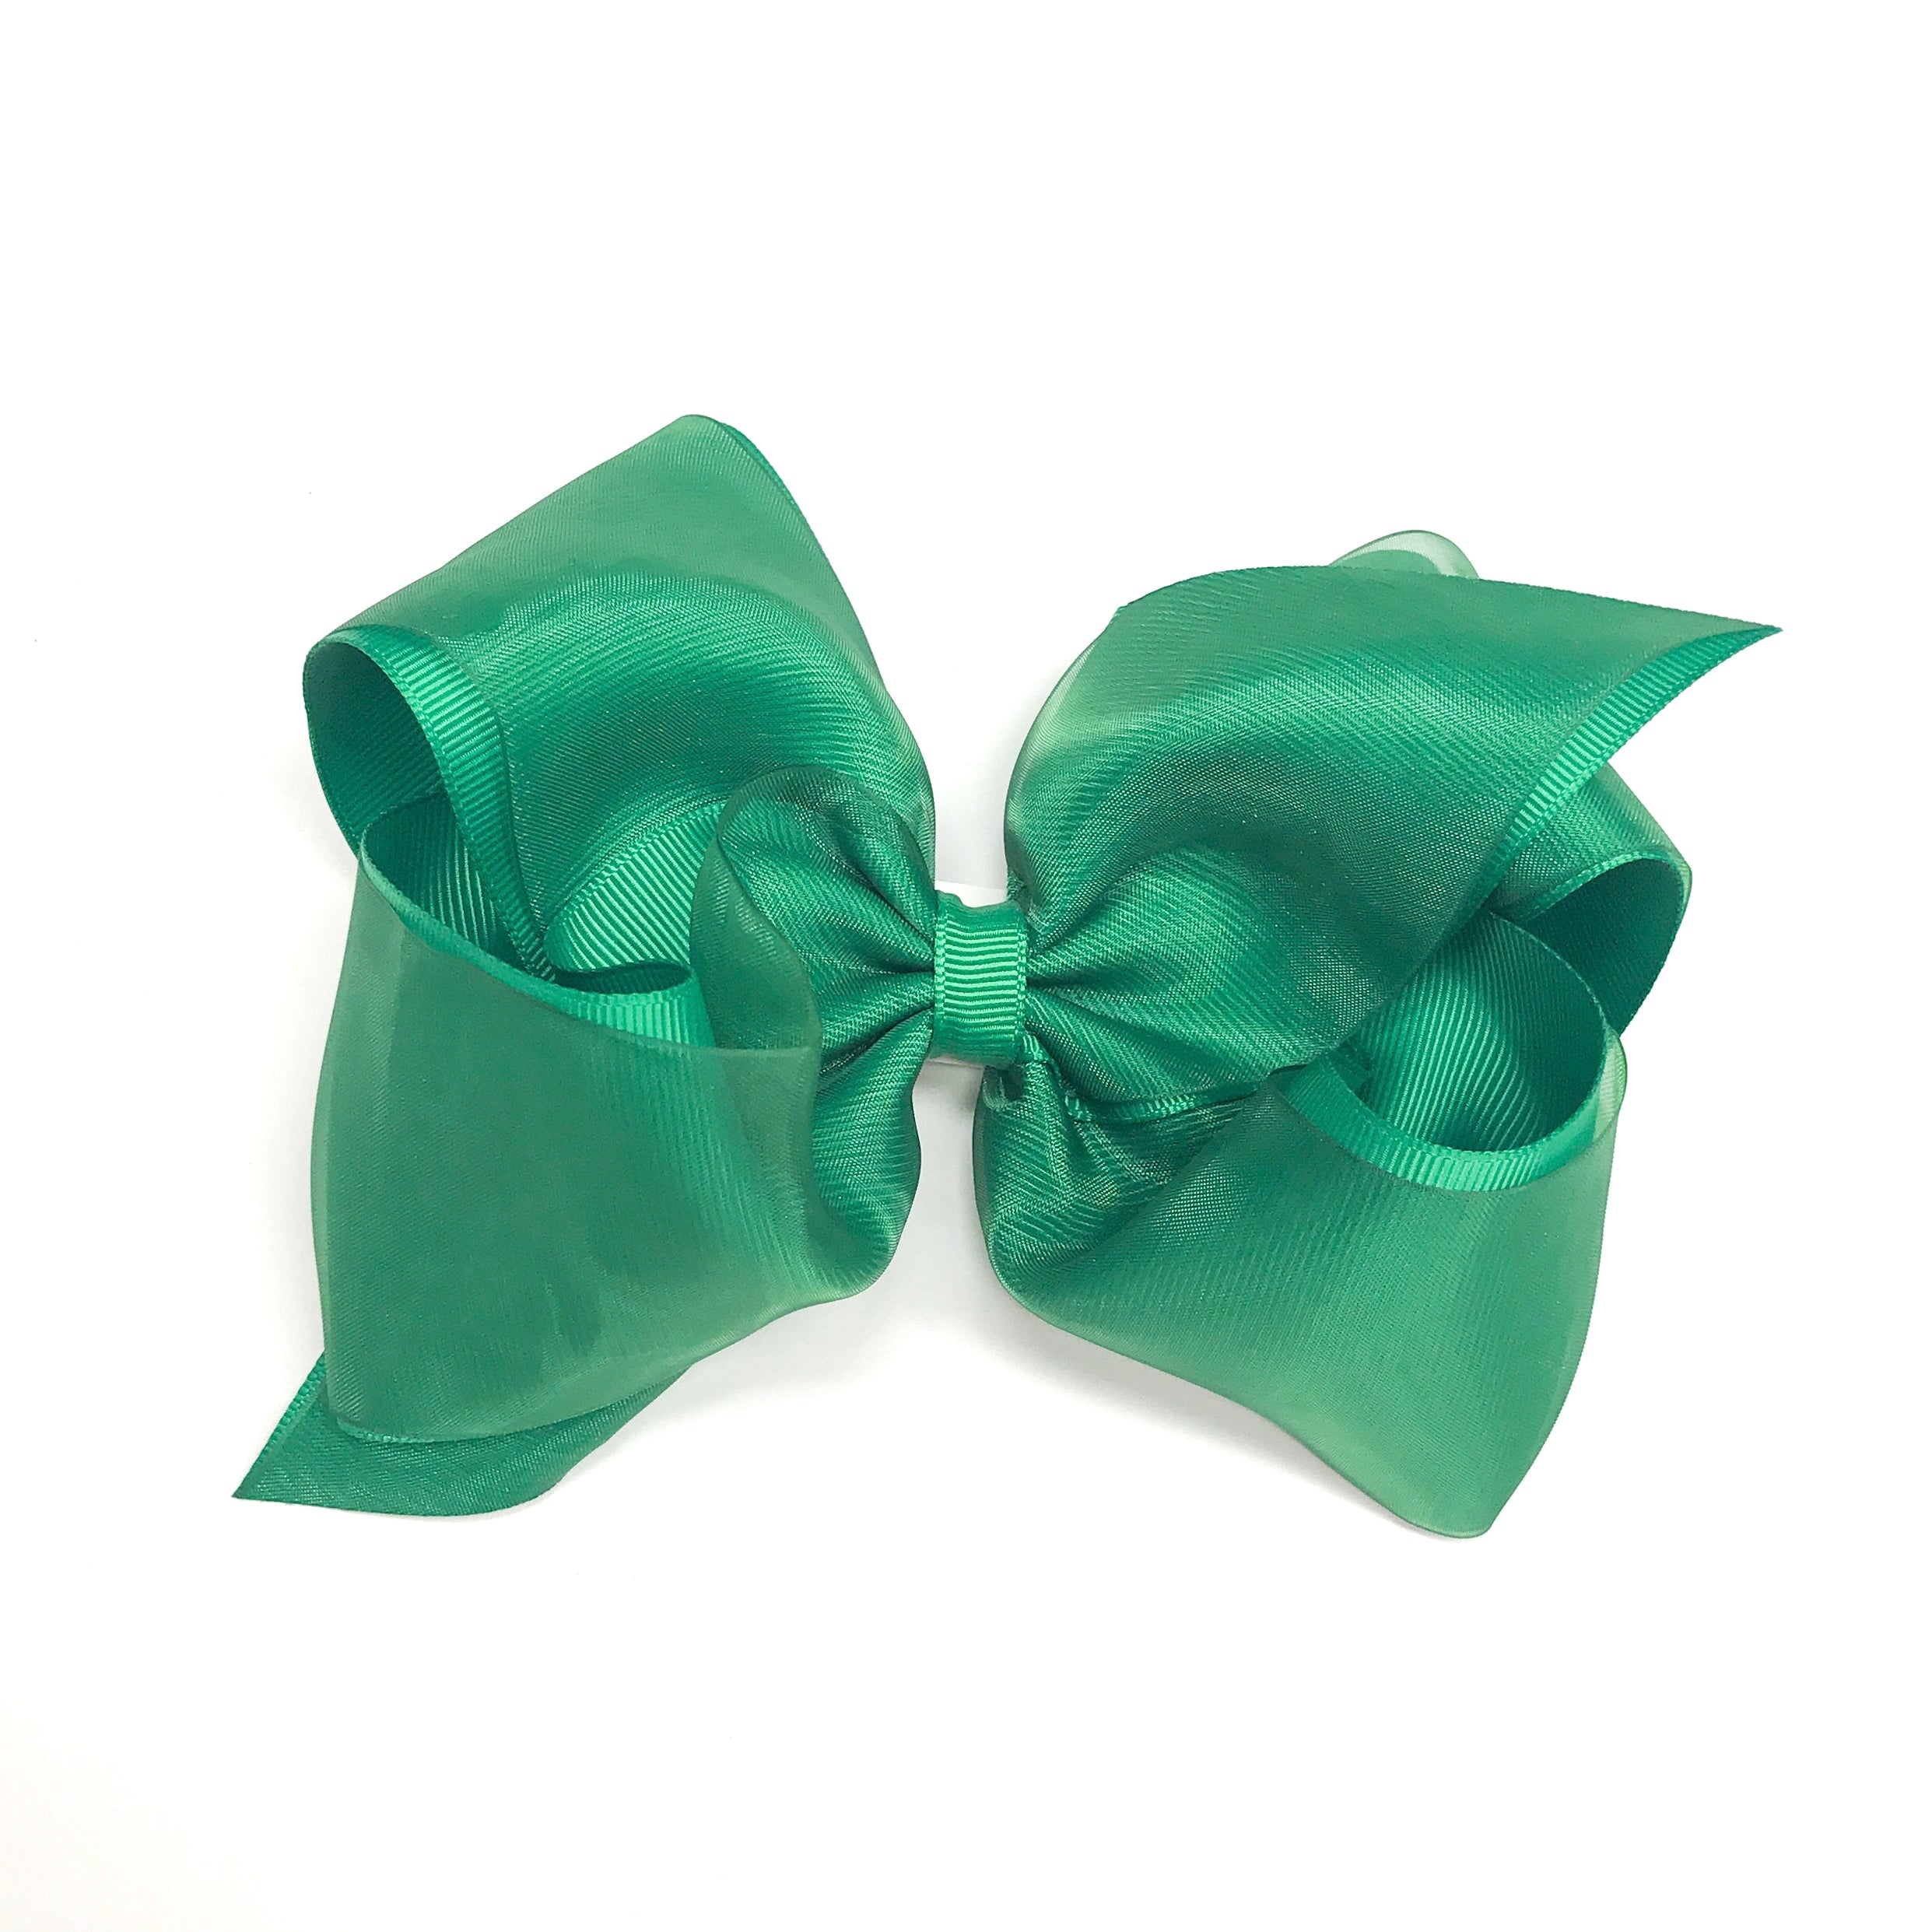 Wee Ones Large Organza Bow